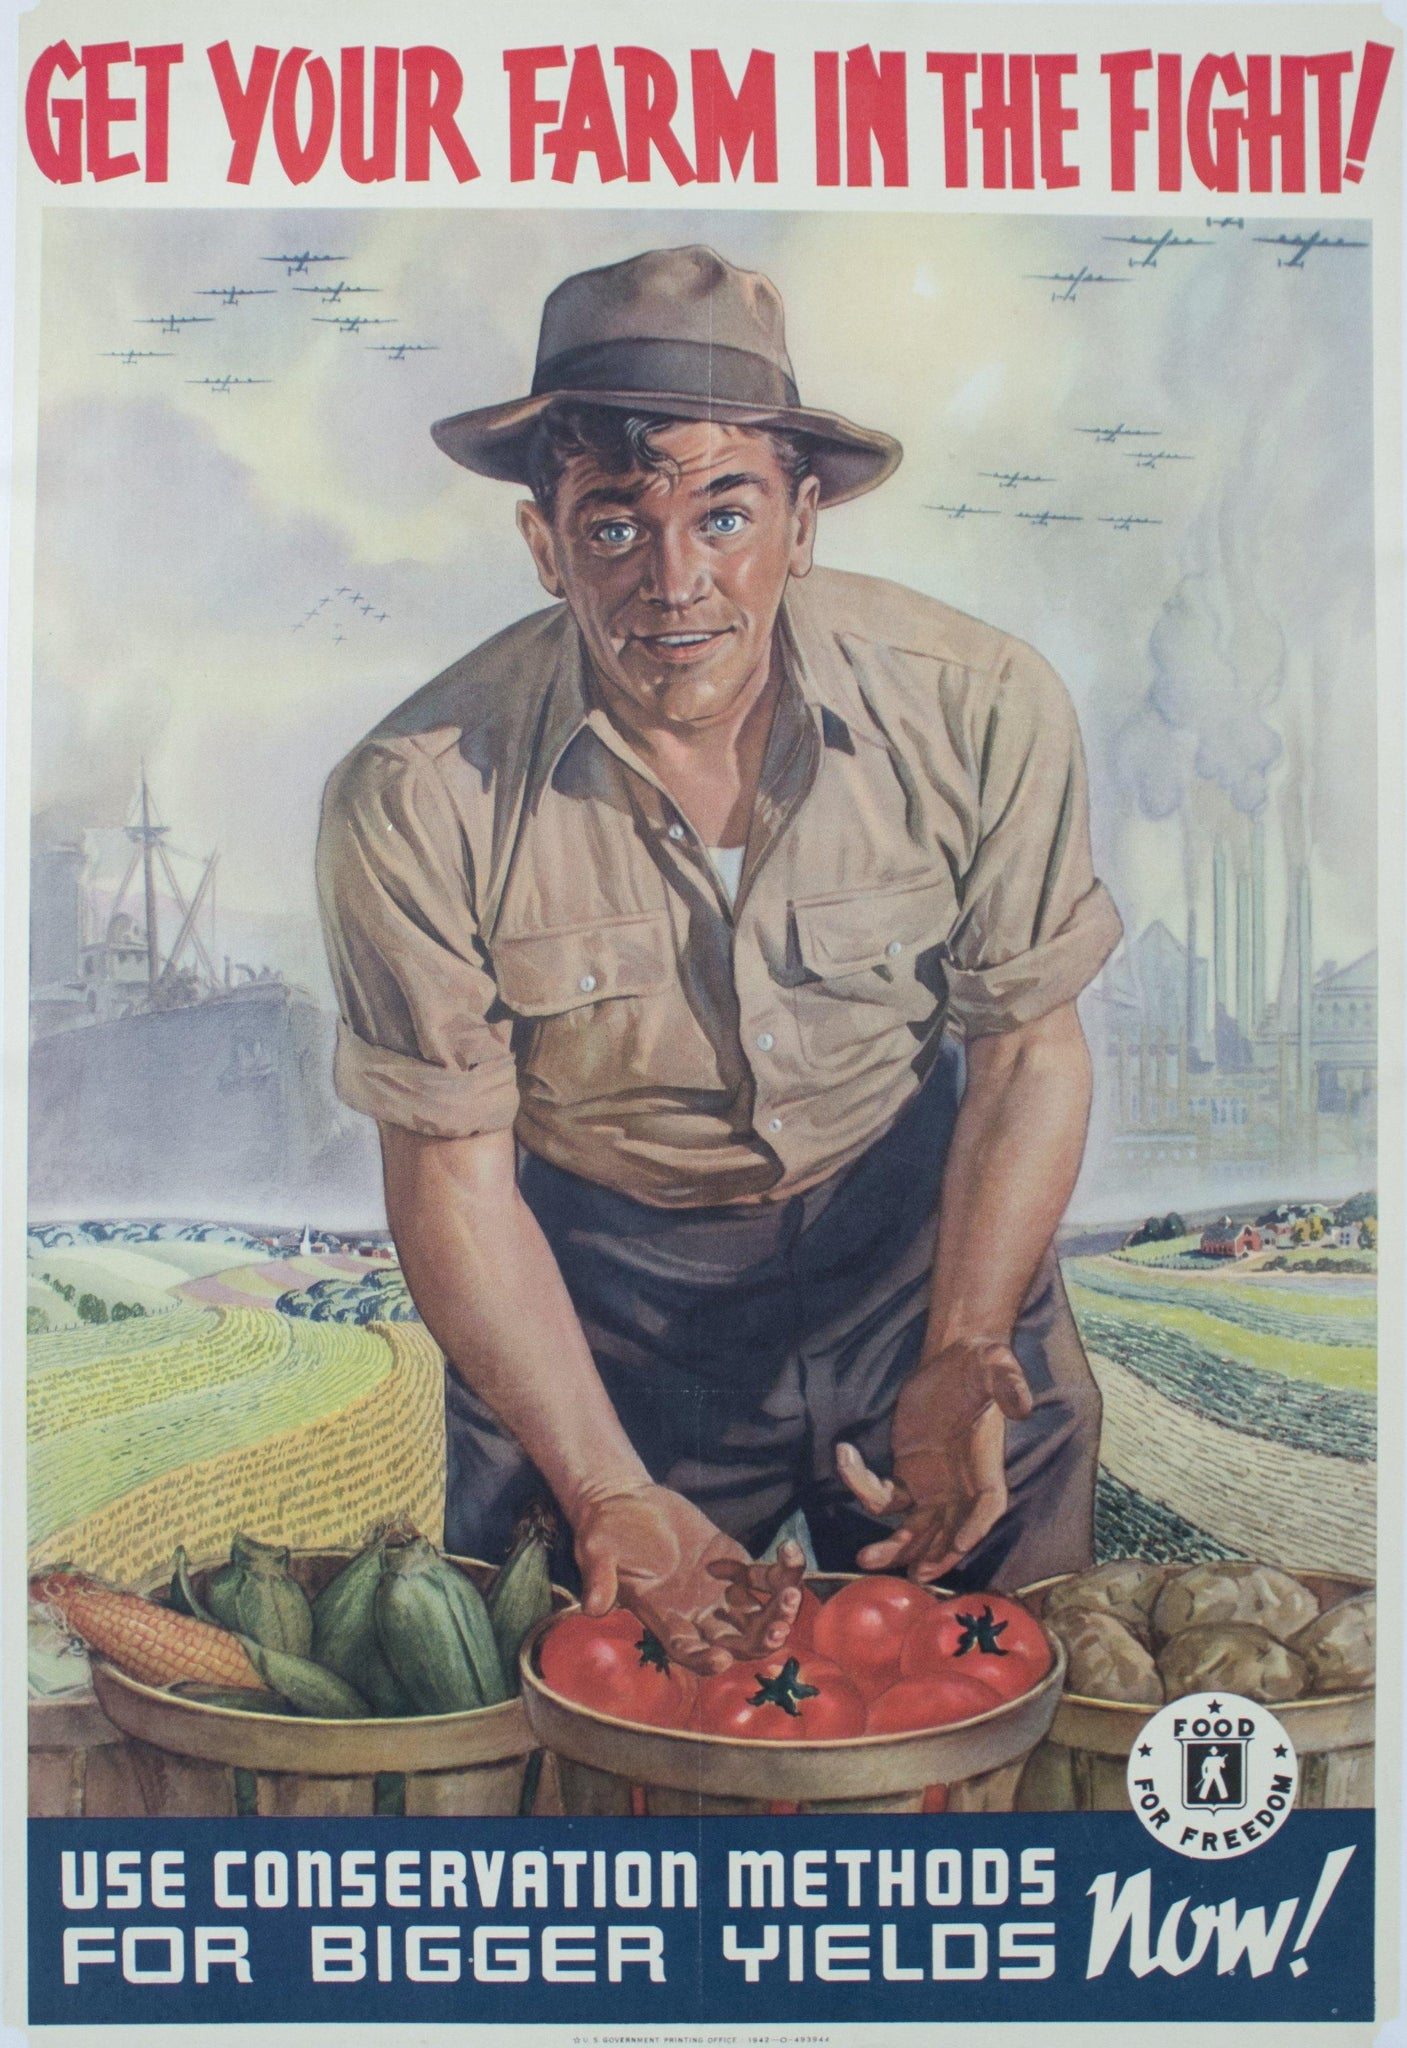 1942 Get Your Farm in the Fight | Use Conservation Methods for Bigger Yields Now | Food for Freedom - Golden Age Posters